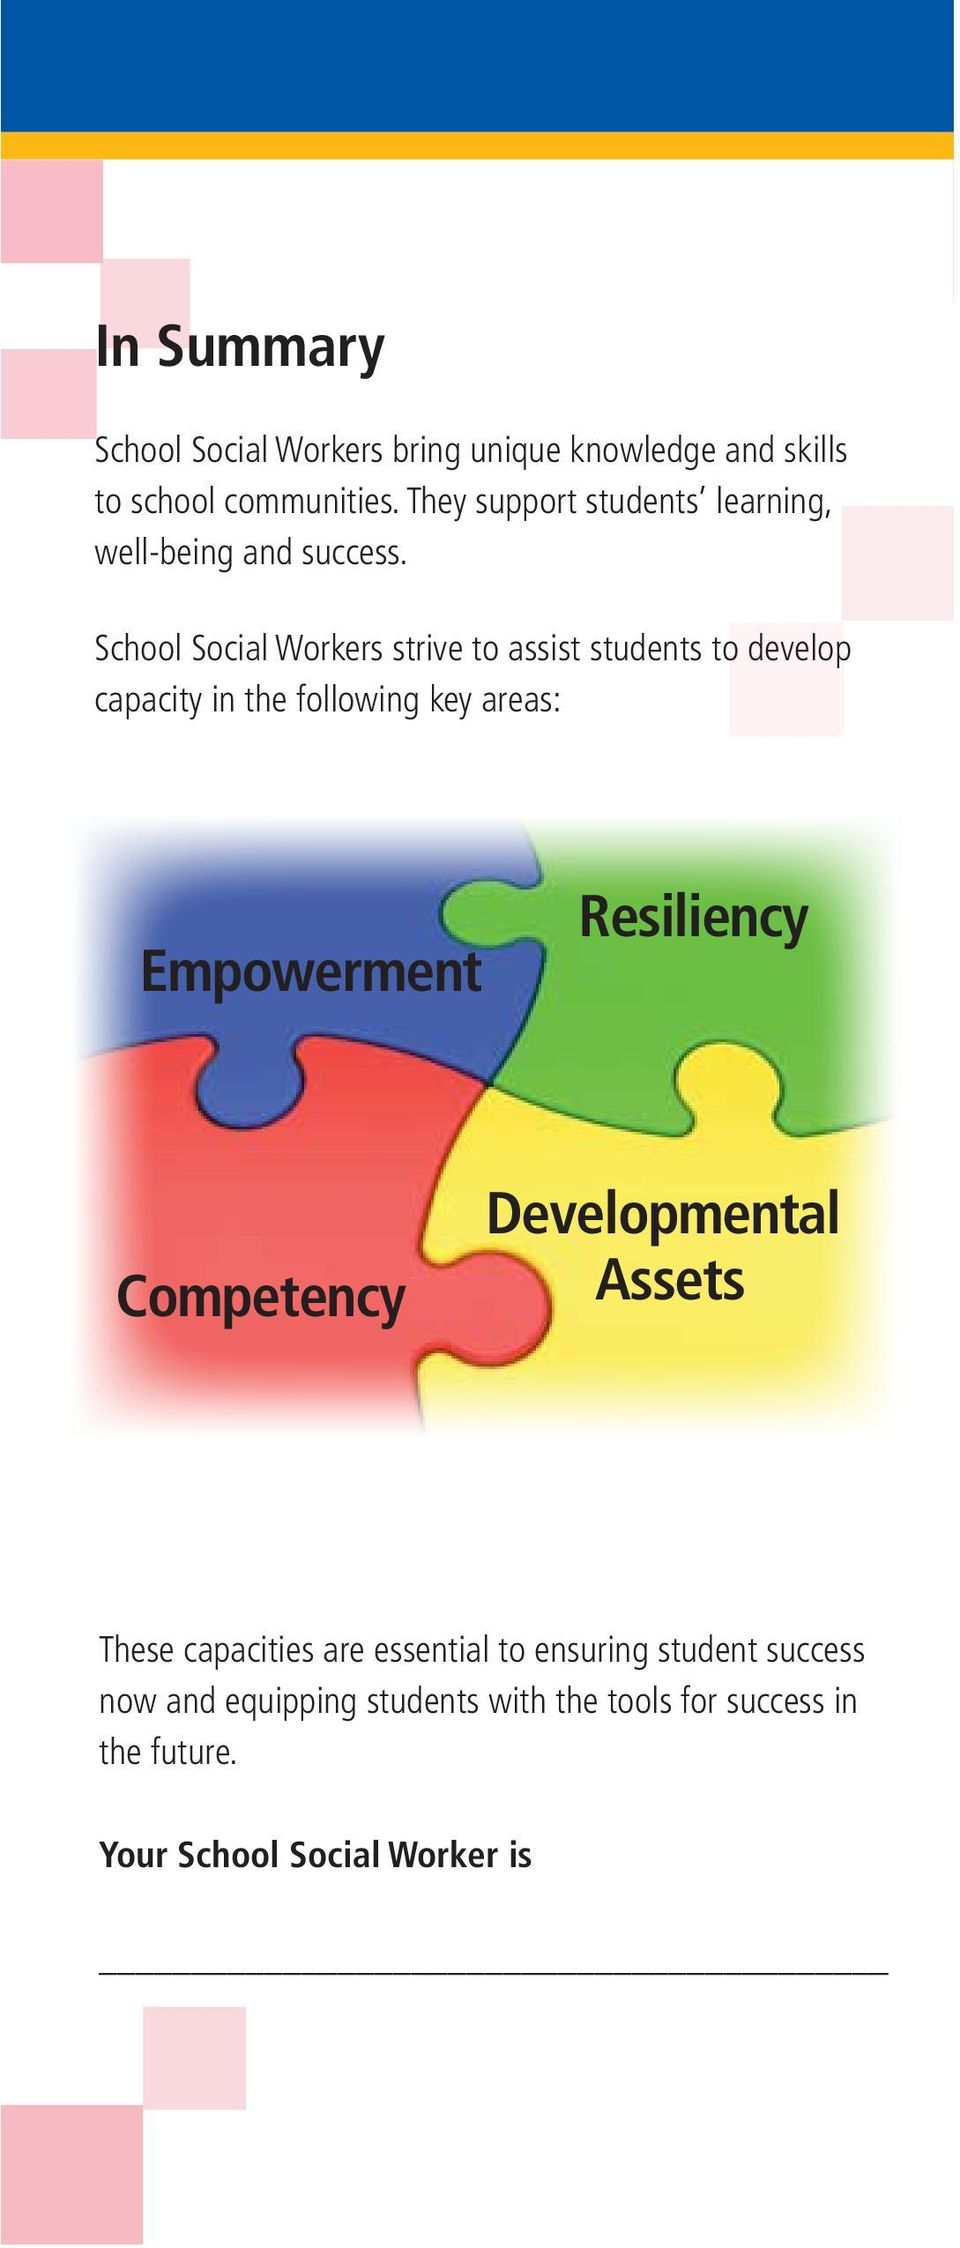 School Social Workers strive to assist students to develop capacity in the following key areas: Empowerment